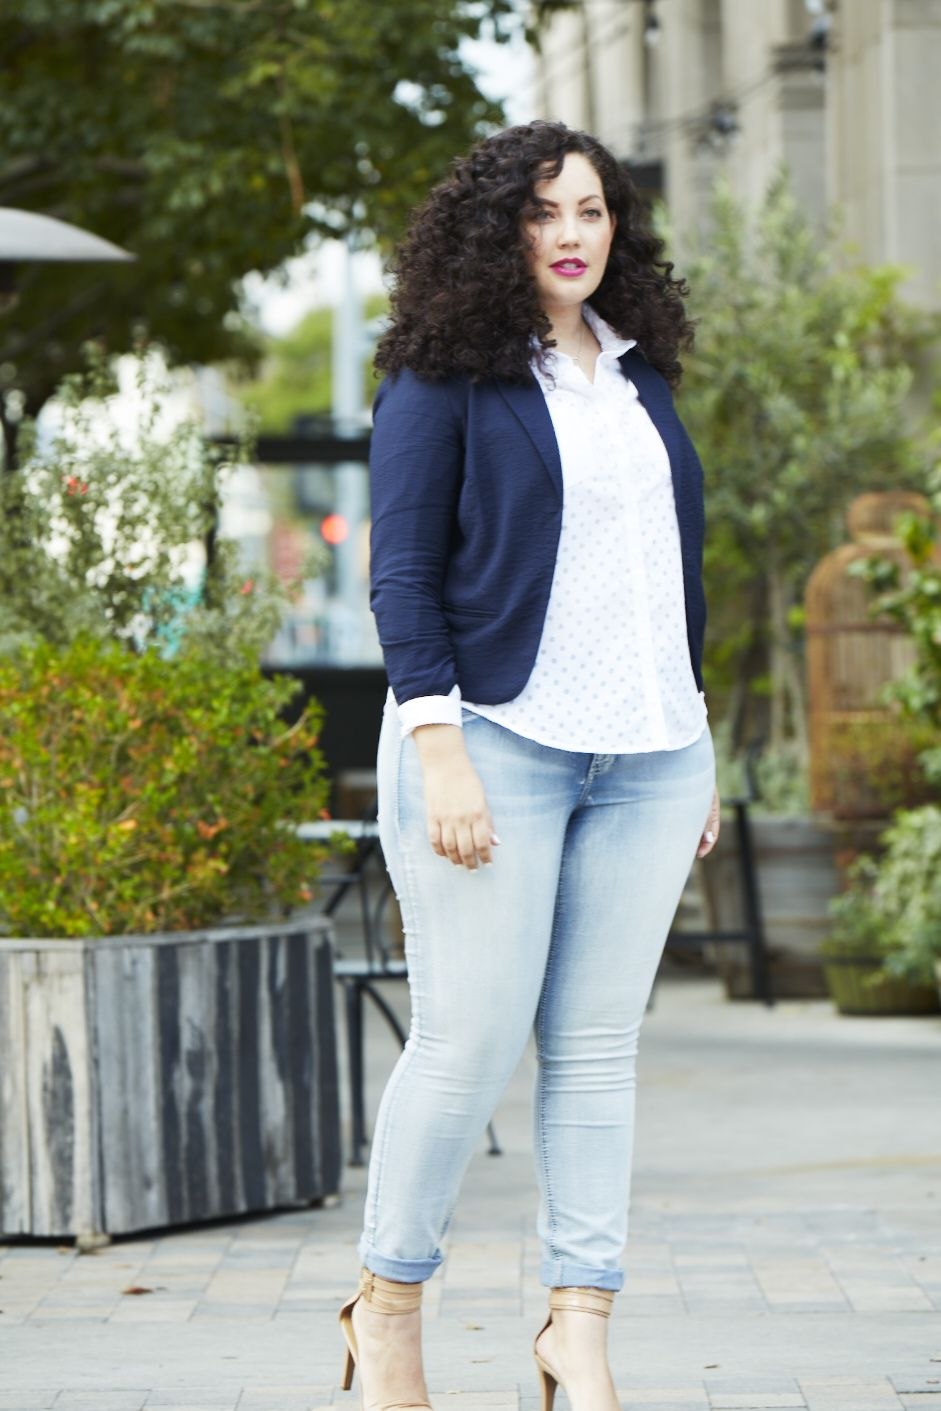 Plus size blogger Girl with Curves wearing her maurices faves. | maurices blog | Pinterest ...